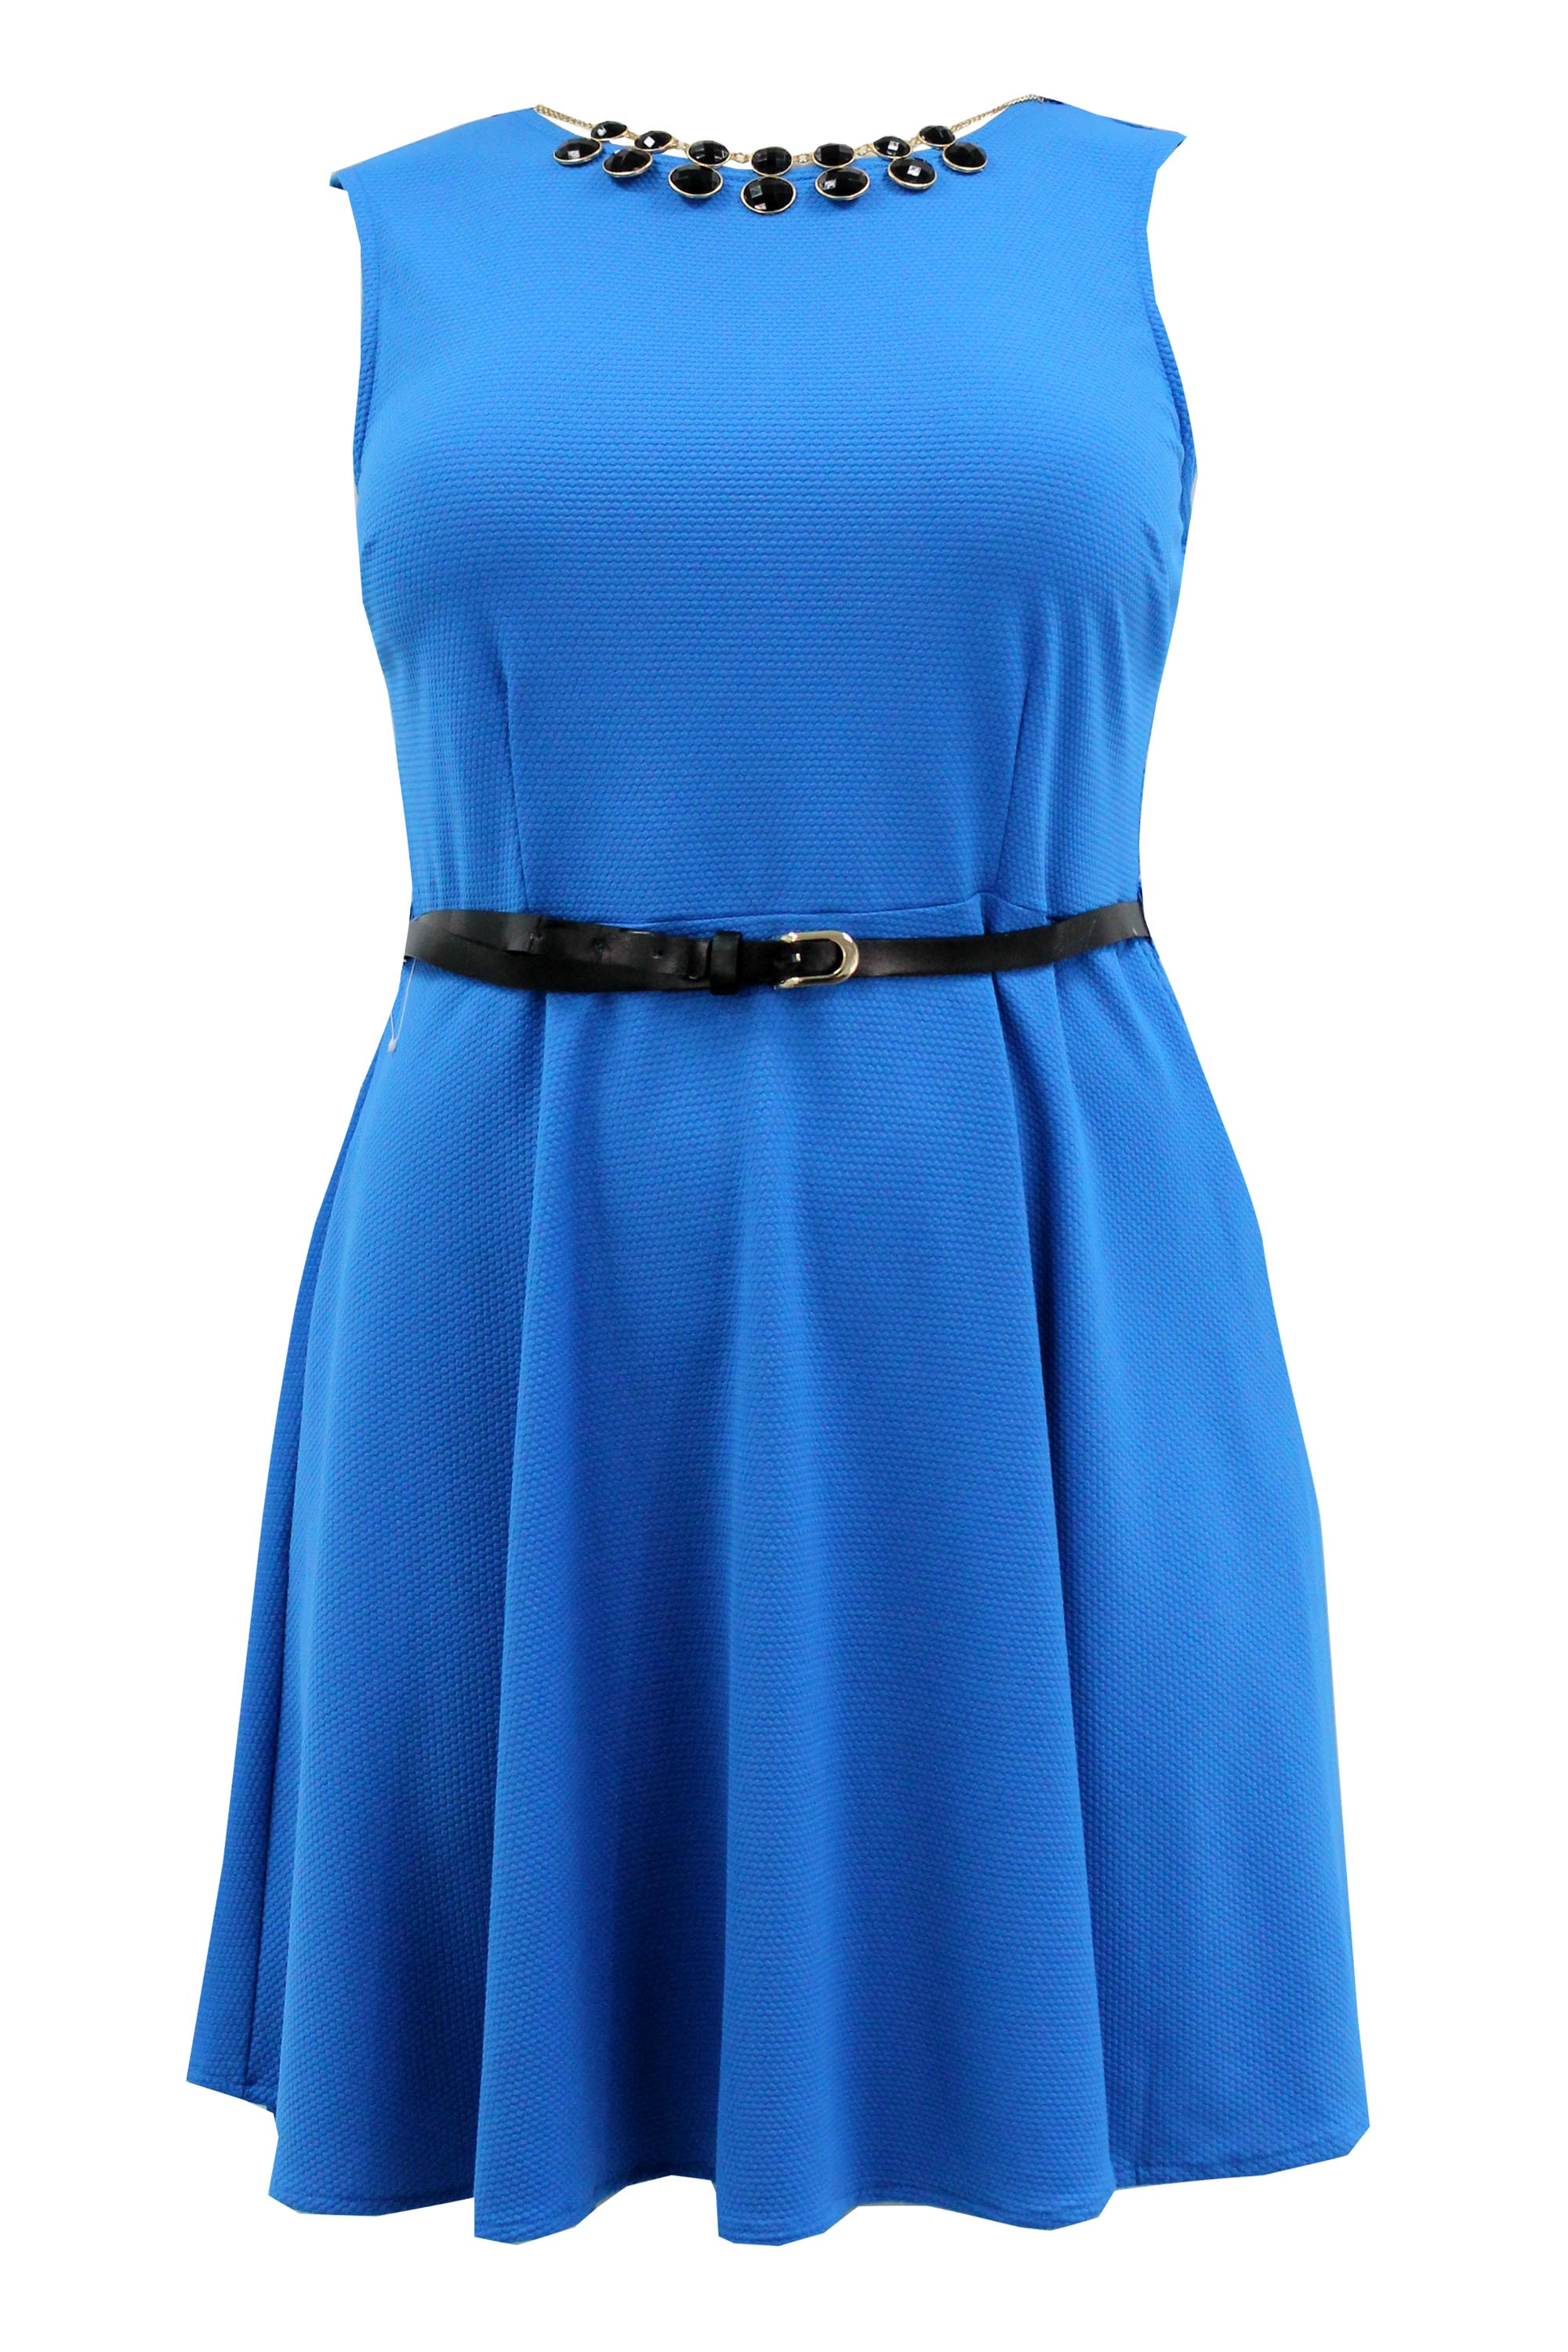 Ladies Womens Plus Size Skater Dress Necklace and Belt Detail Sleeveless